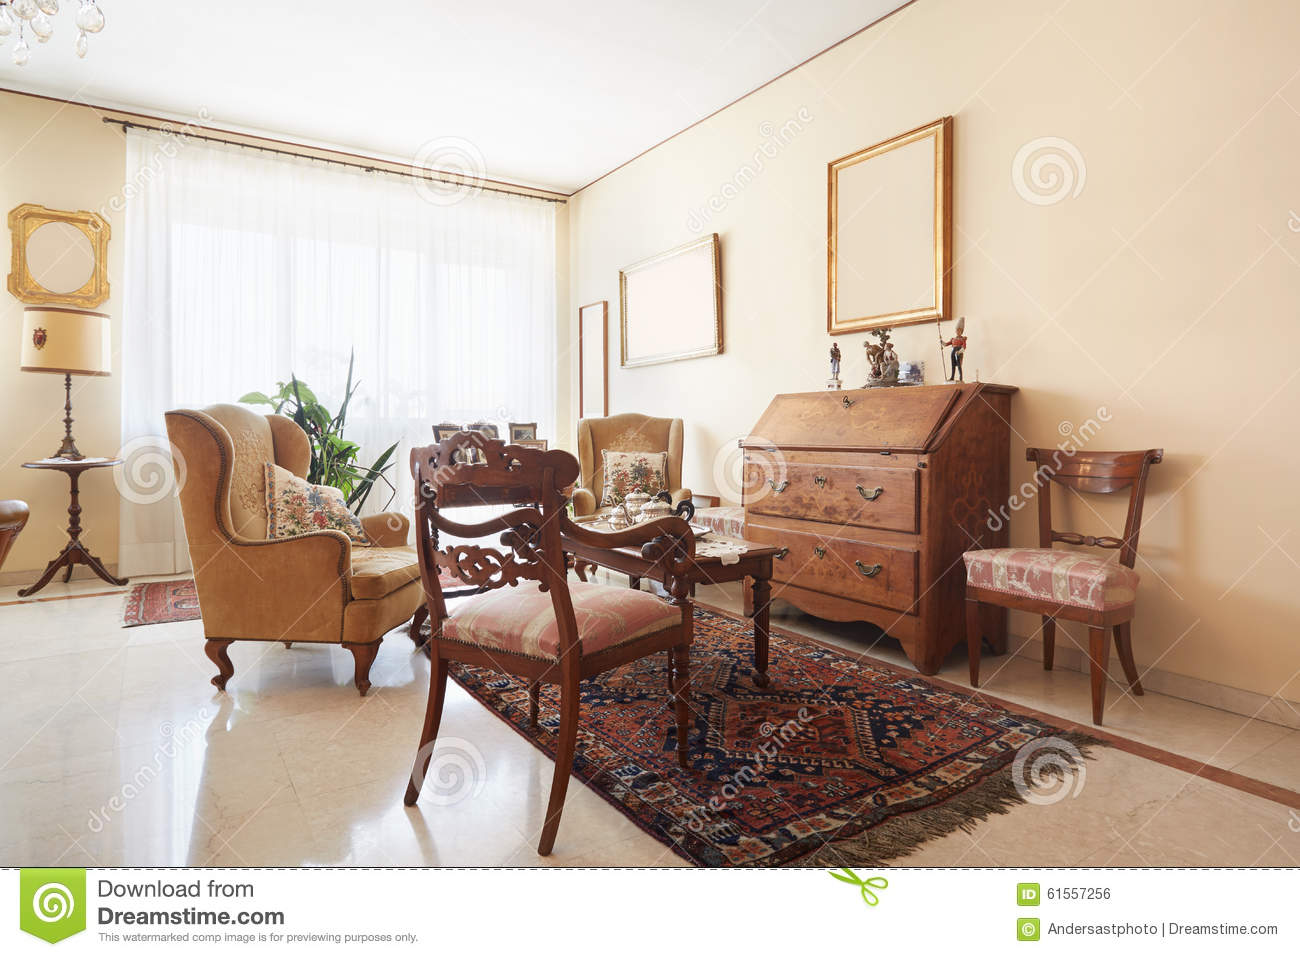 Living Room Classic Interior With Antiquities Stock Photo Image Of Decor Home 61557256